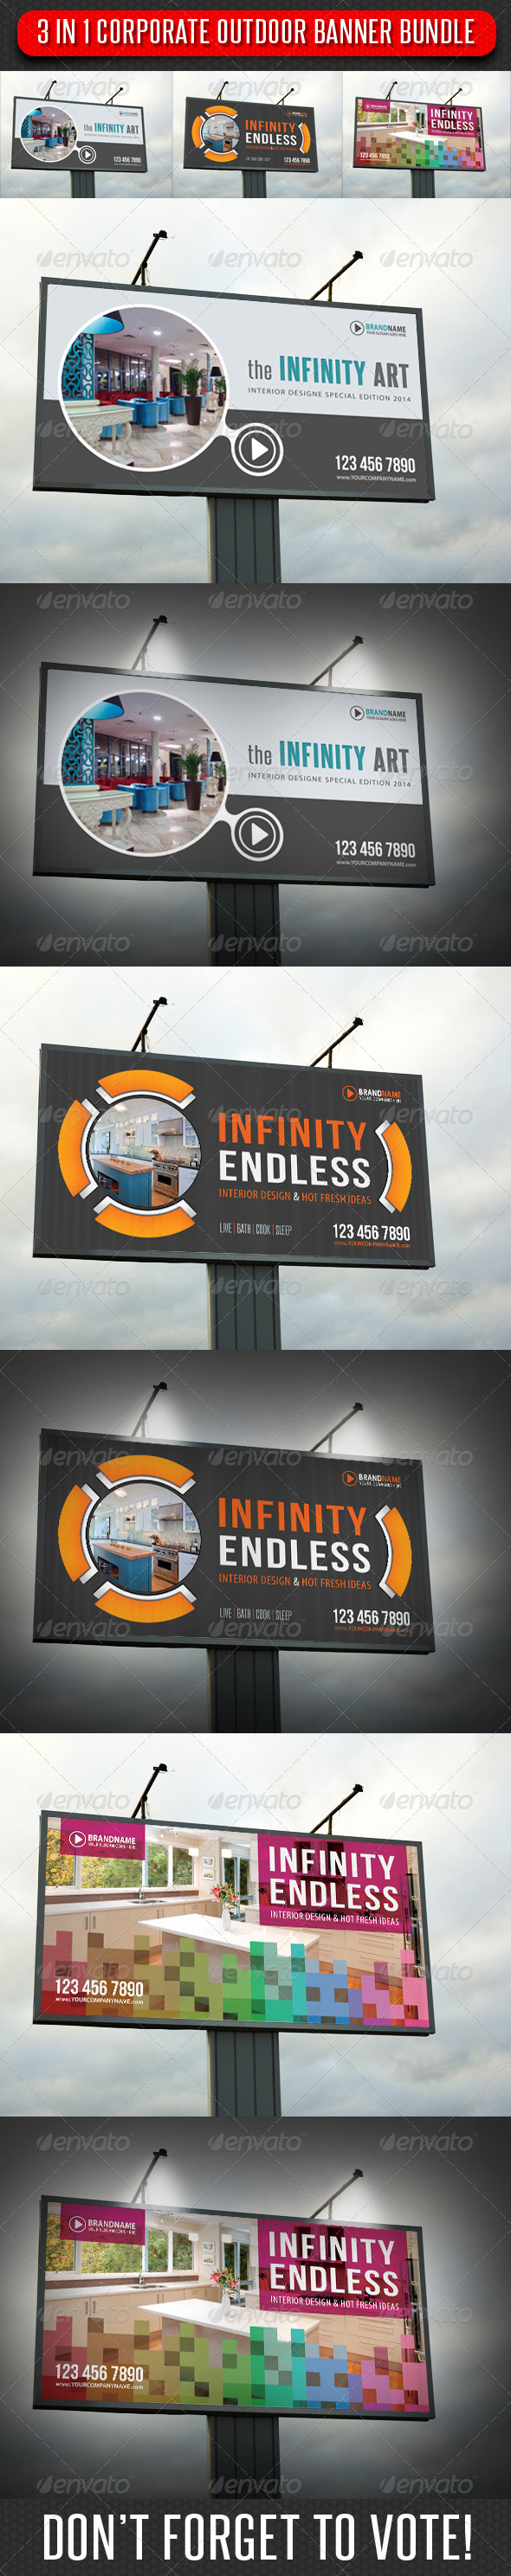 GraphicRiver 3 in 1 Corporate Outdoor Banner Bundle 09 7675818